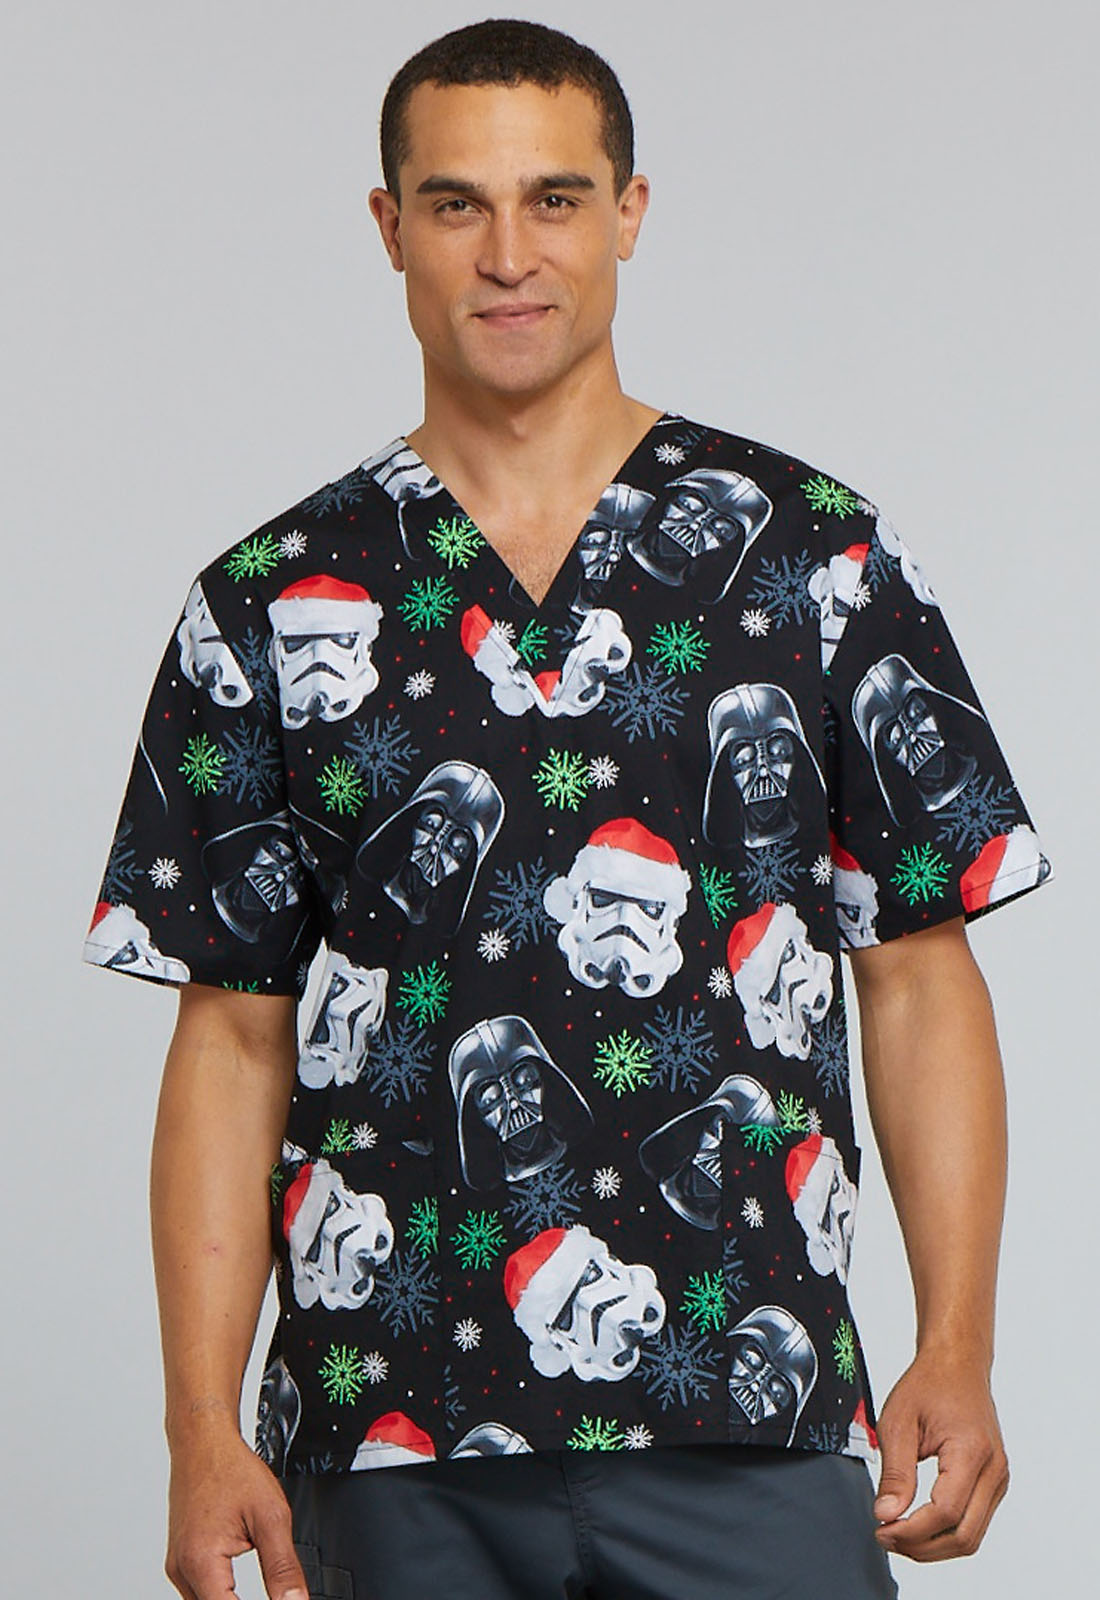 Unisex Star Wars Scrub Top